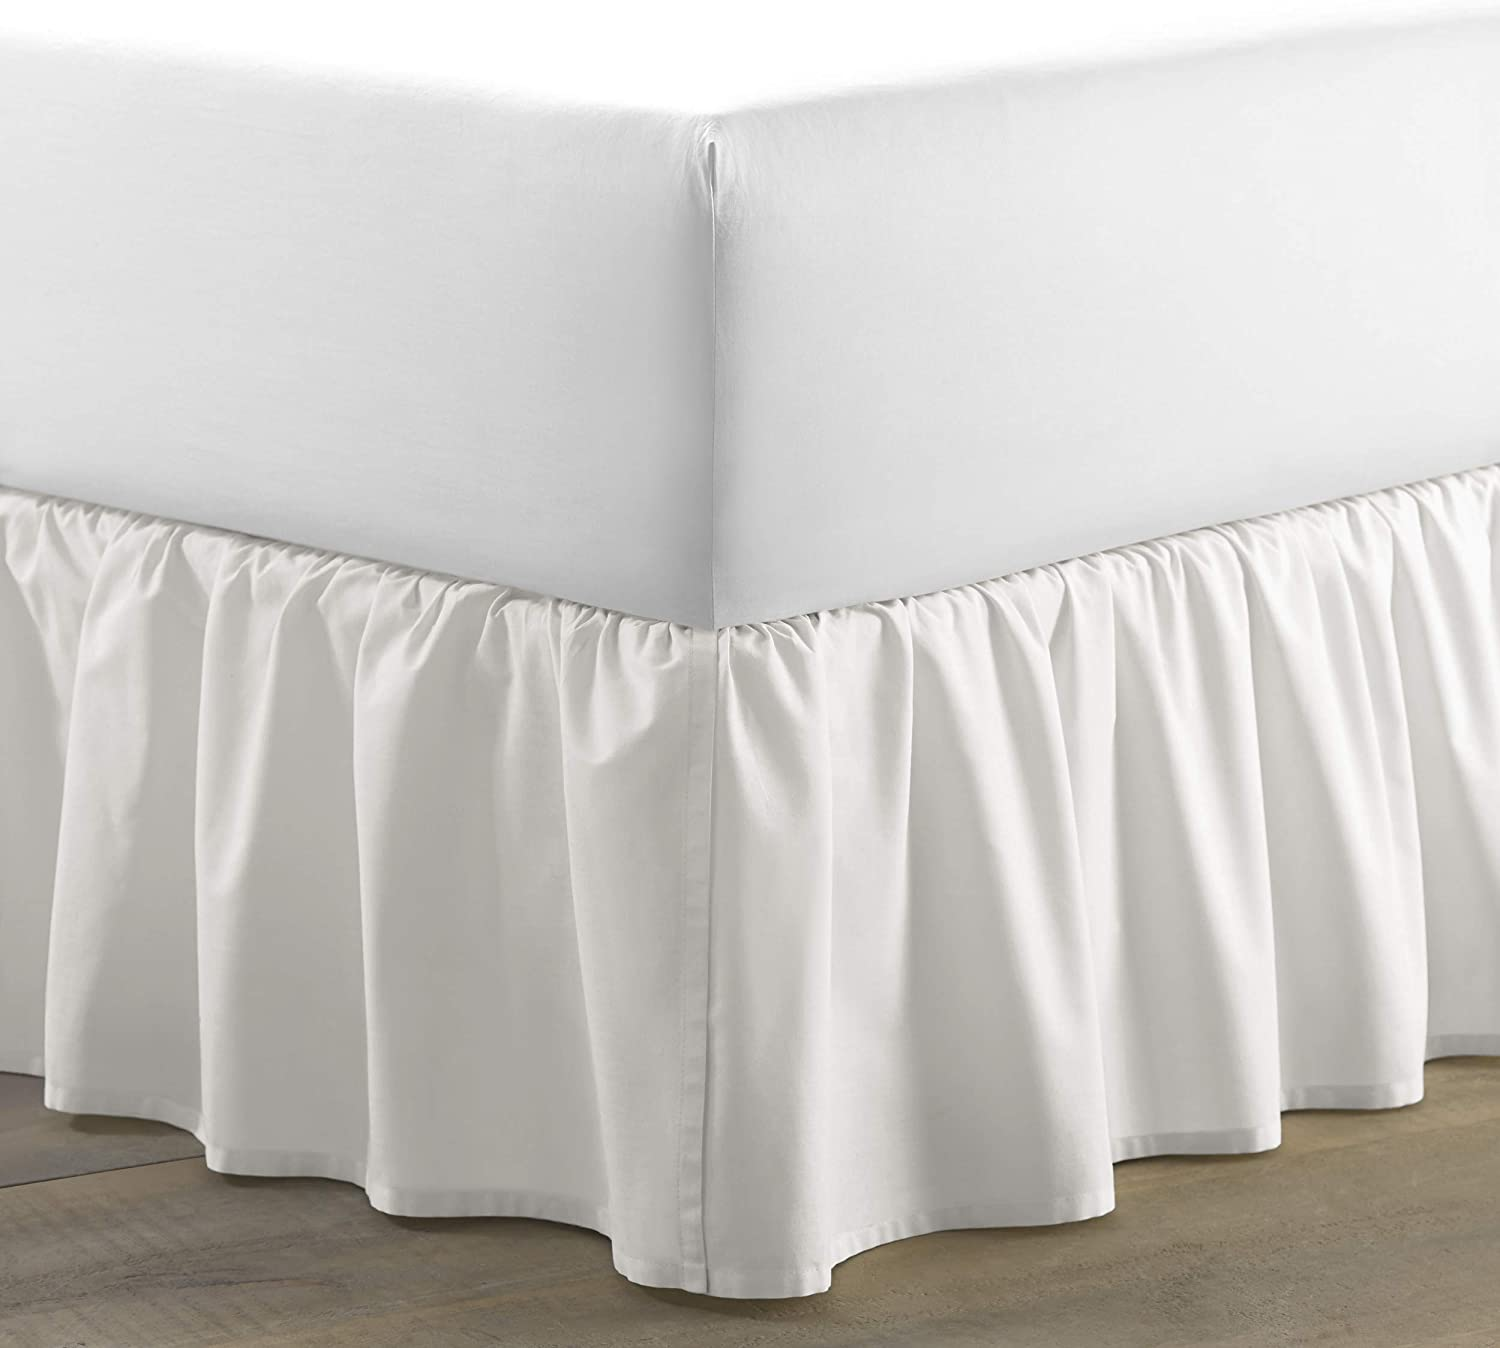 Laura Ashley Home   Solid Collection   Luxury Premium Hotel Quality Bedskirt, Easy Fit, Anti Wrinkle & Fade Resistant, Stylish Design for Home Décor, Twin, White